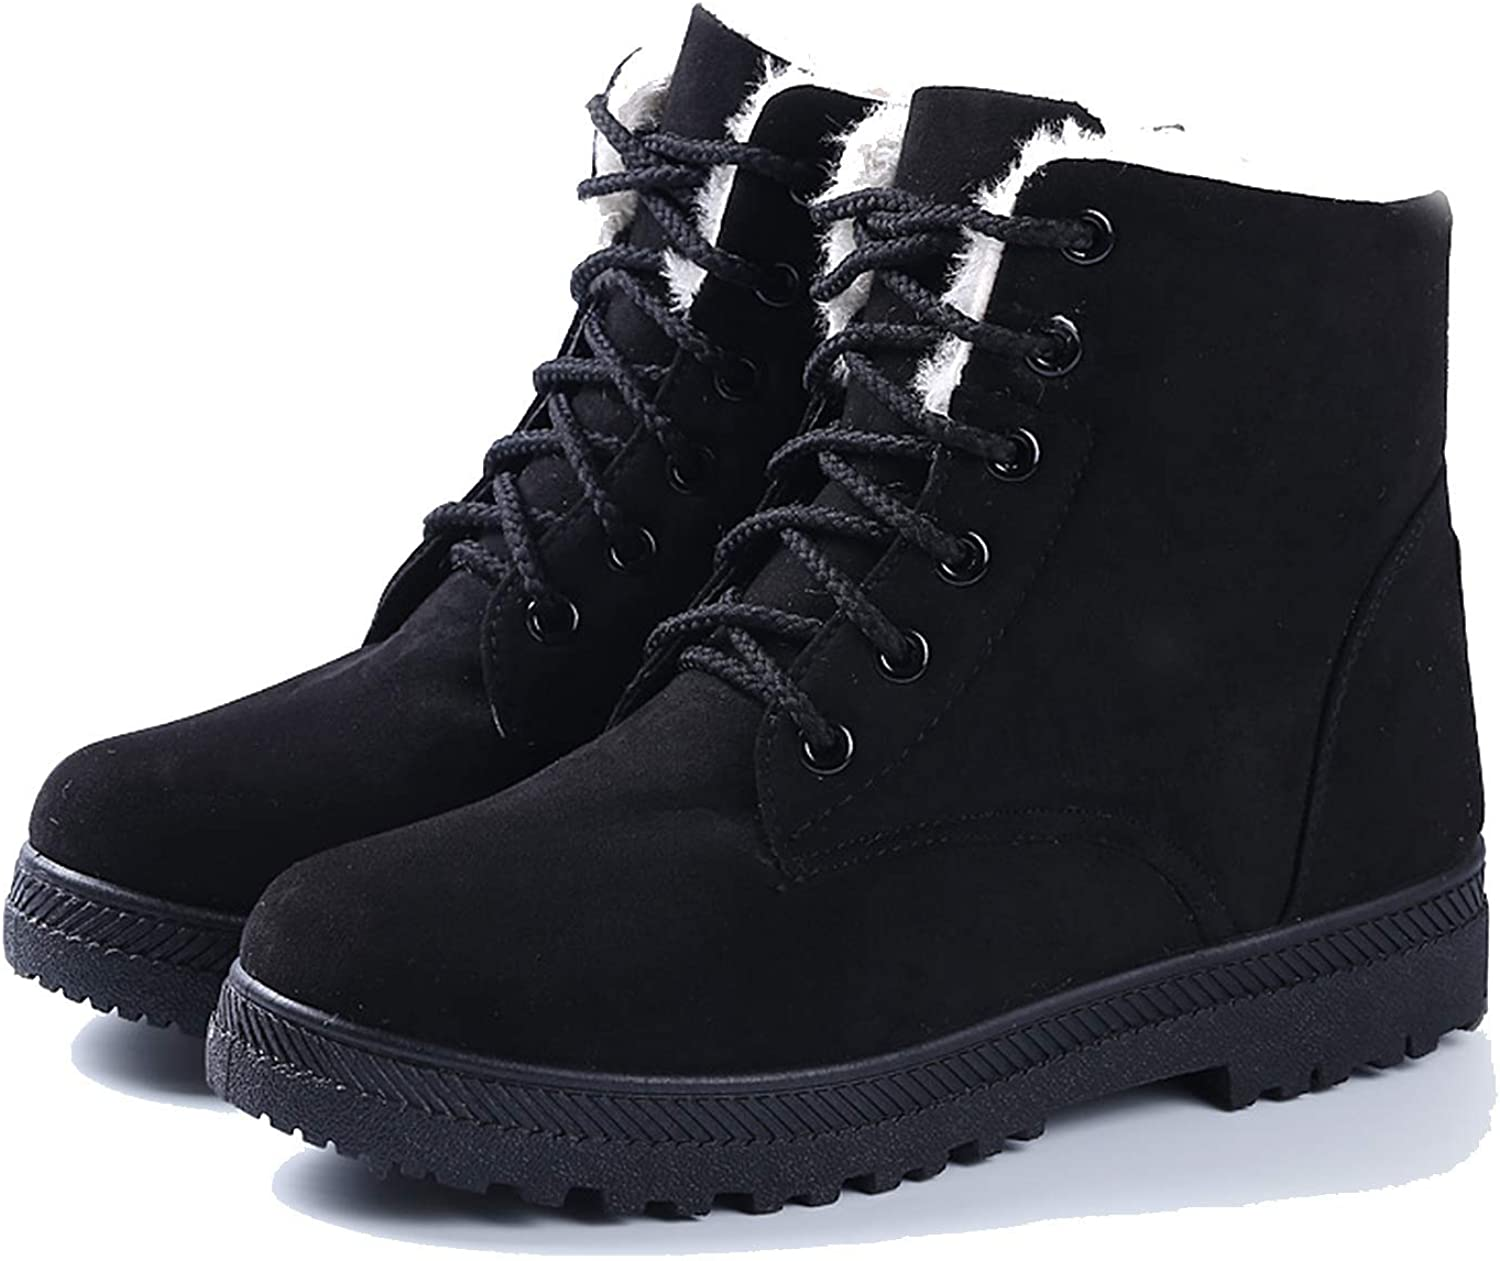 Fashion Warm Snow Boots 2018 Heels Winter Women Ankle shoes,